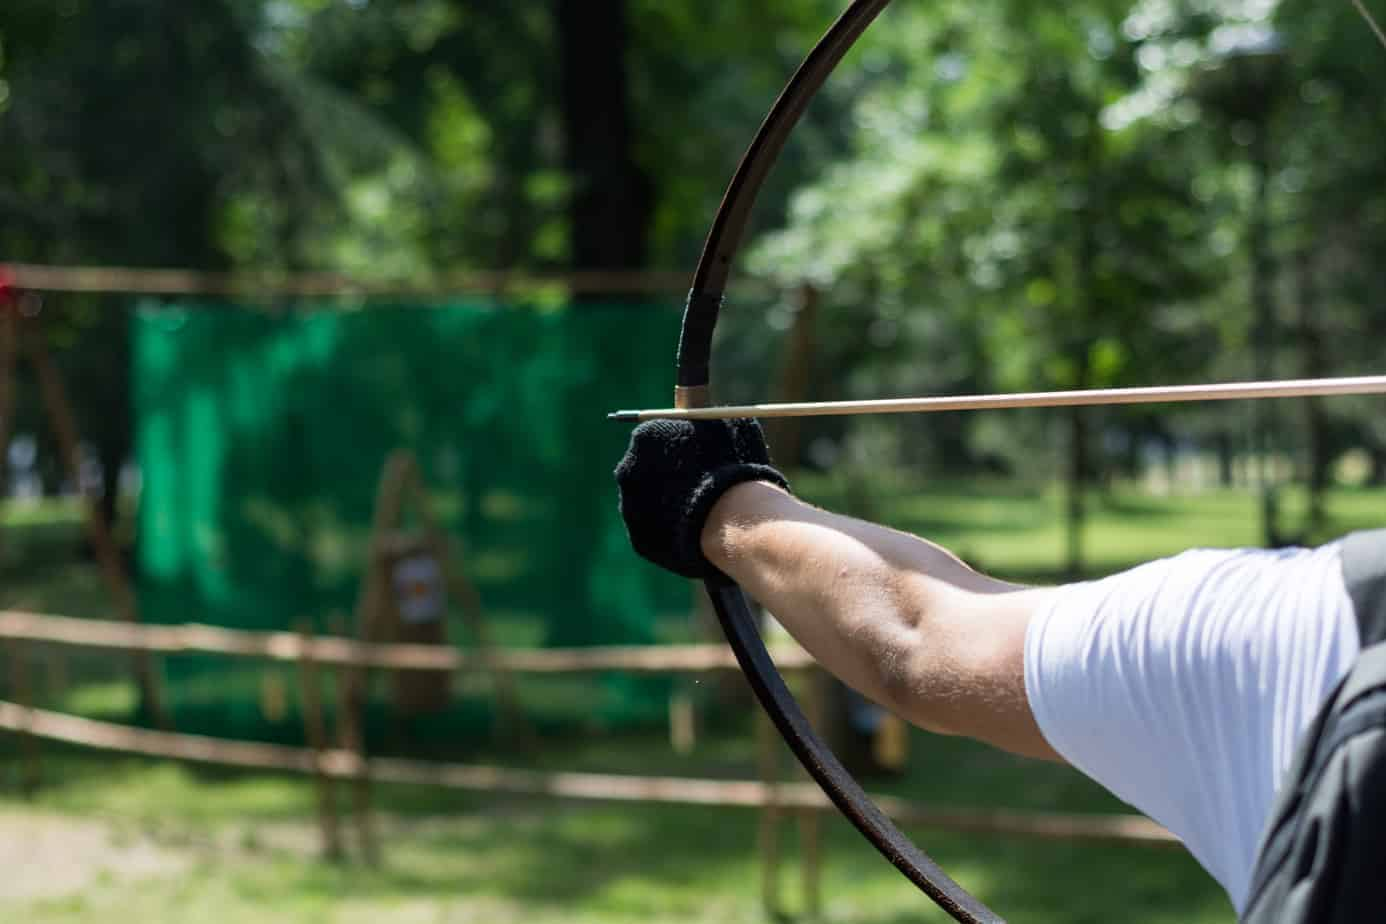 Archer hands with wooden bow shoot arrow. Archery tournament in forest.